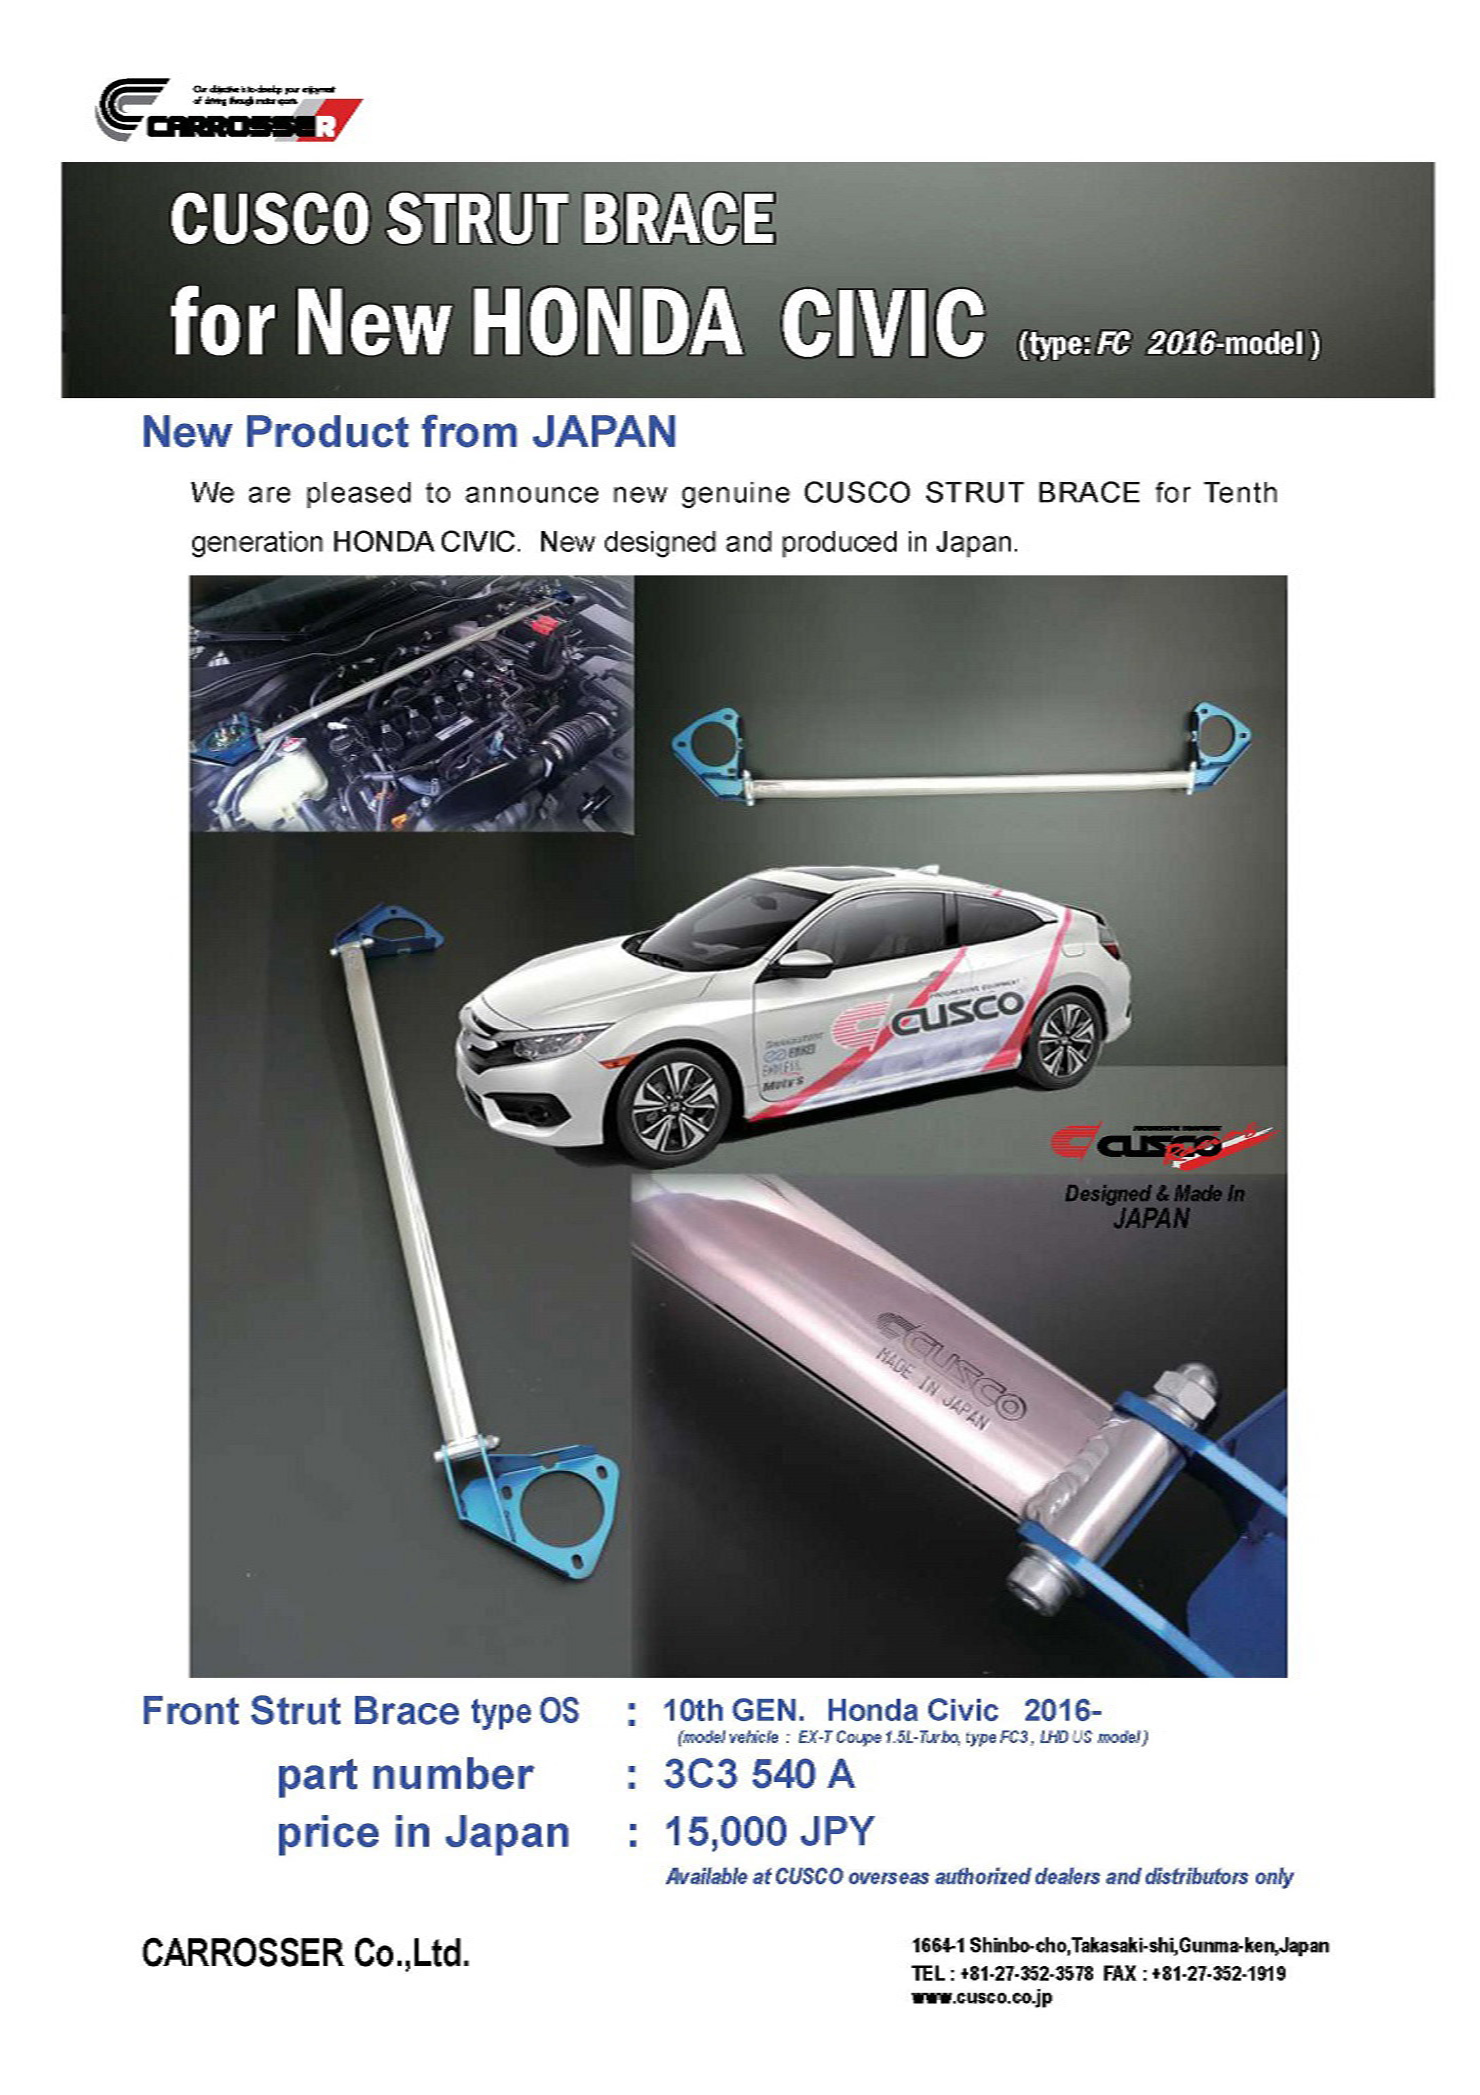 CUSCO STRUT BRACE For New HONDA CIVIC